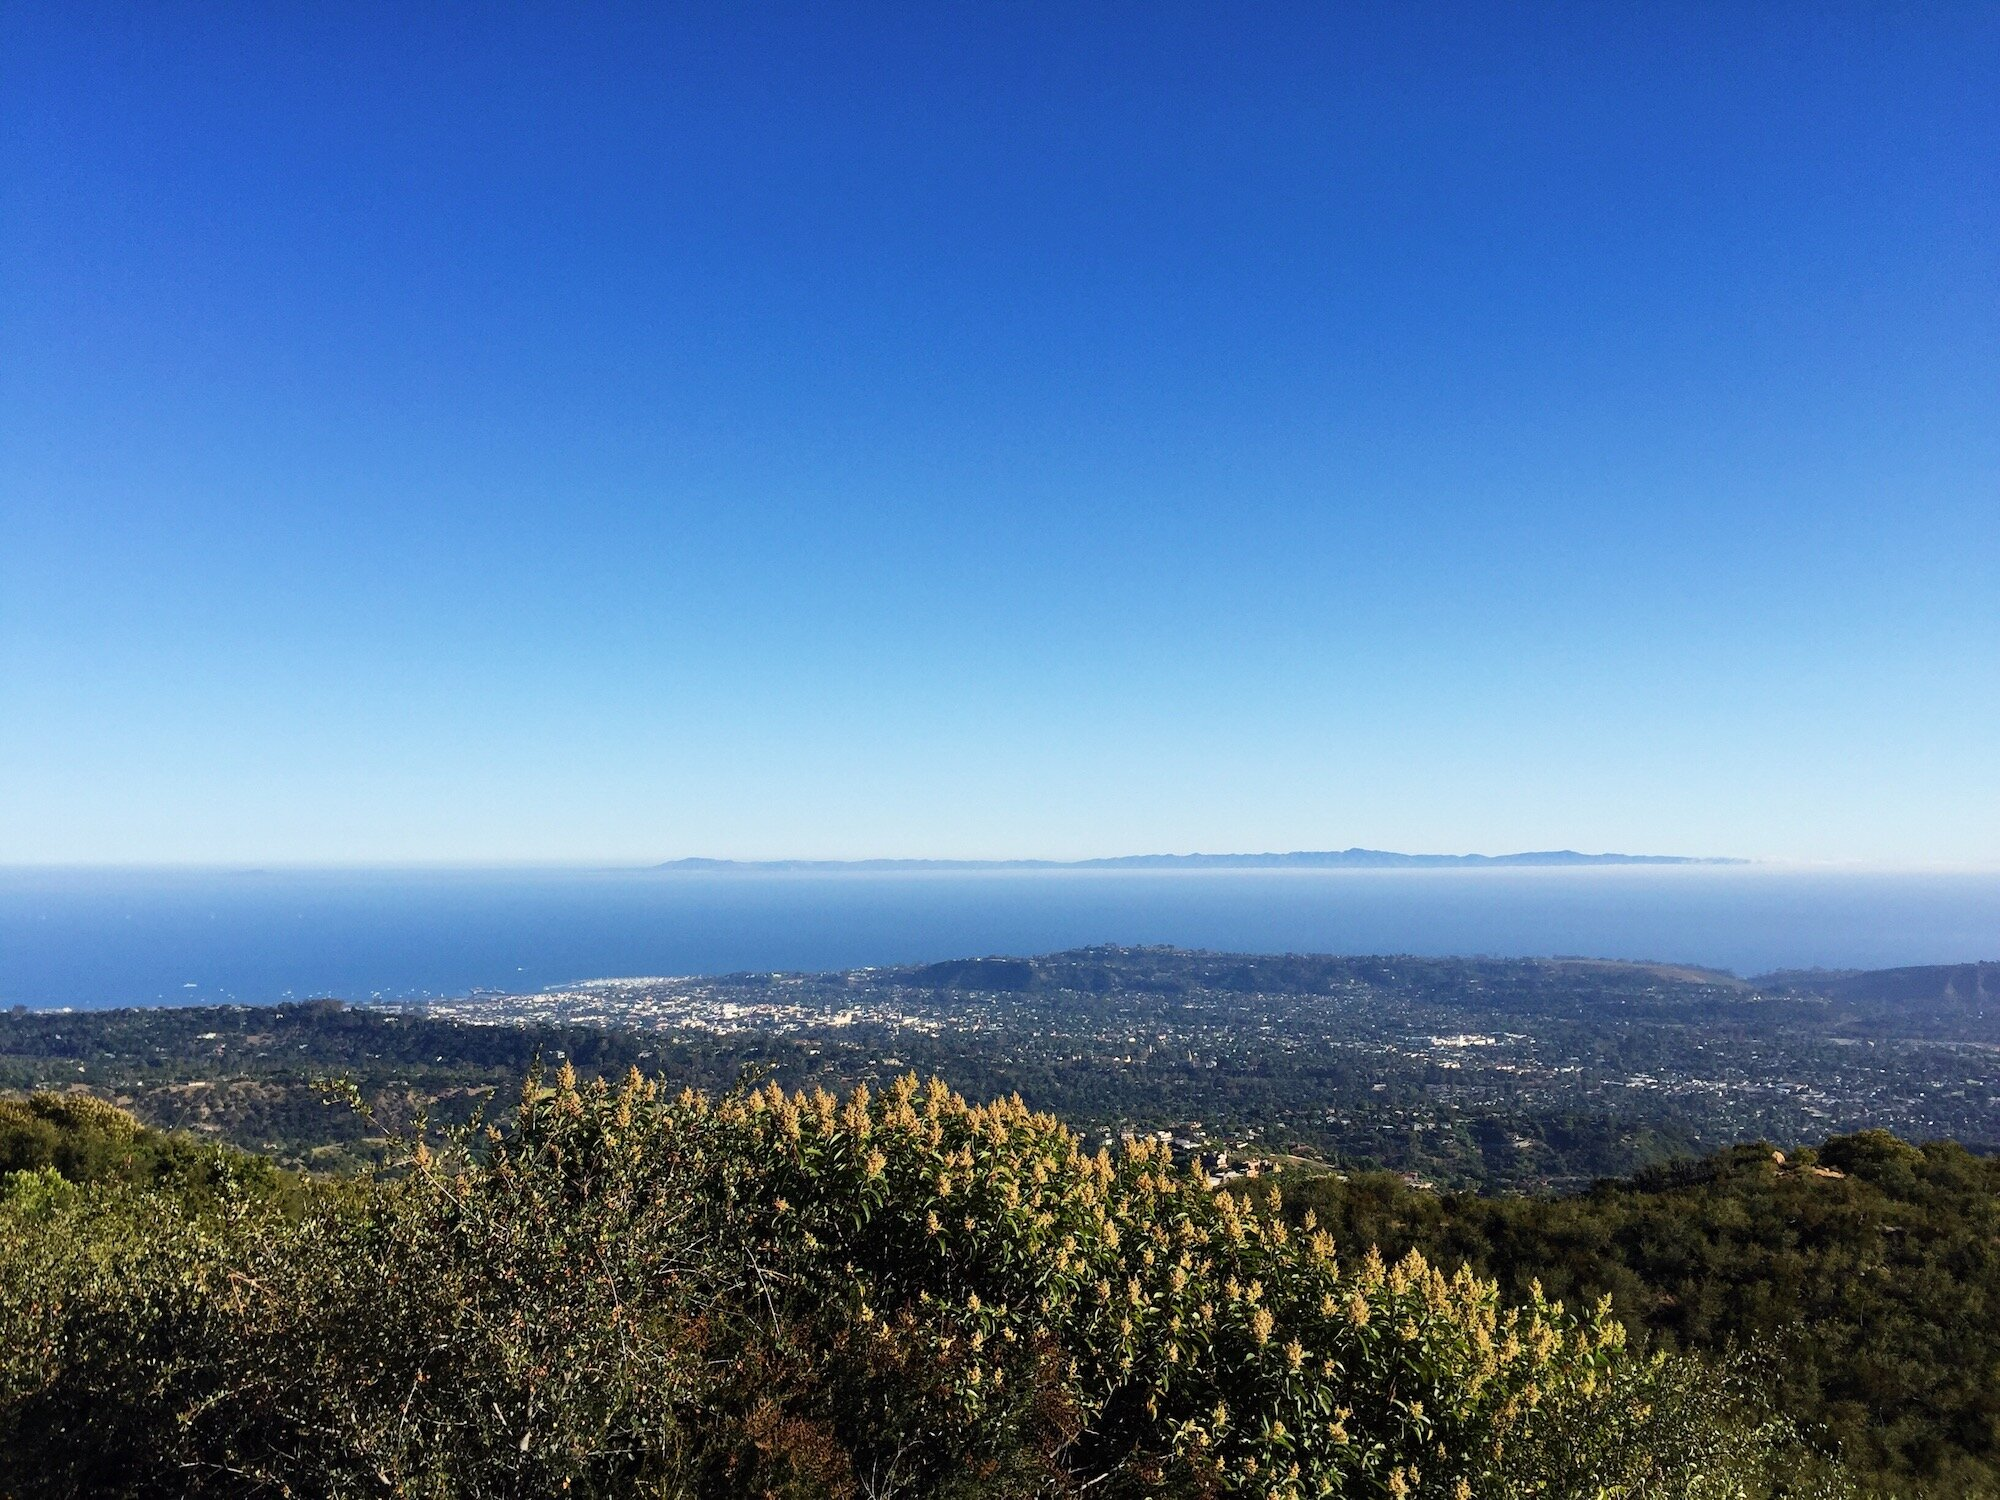 The view from Inspiration Point, Santa Barbara, CA